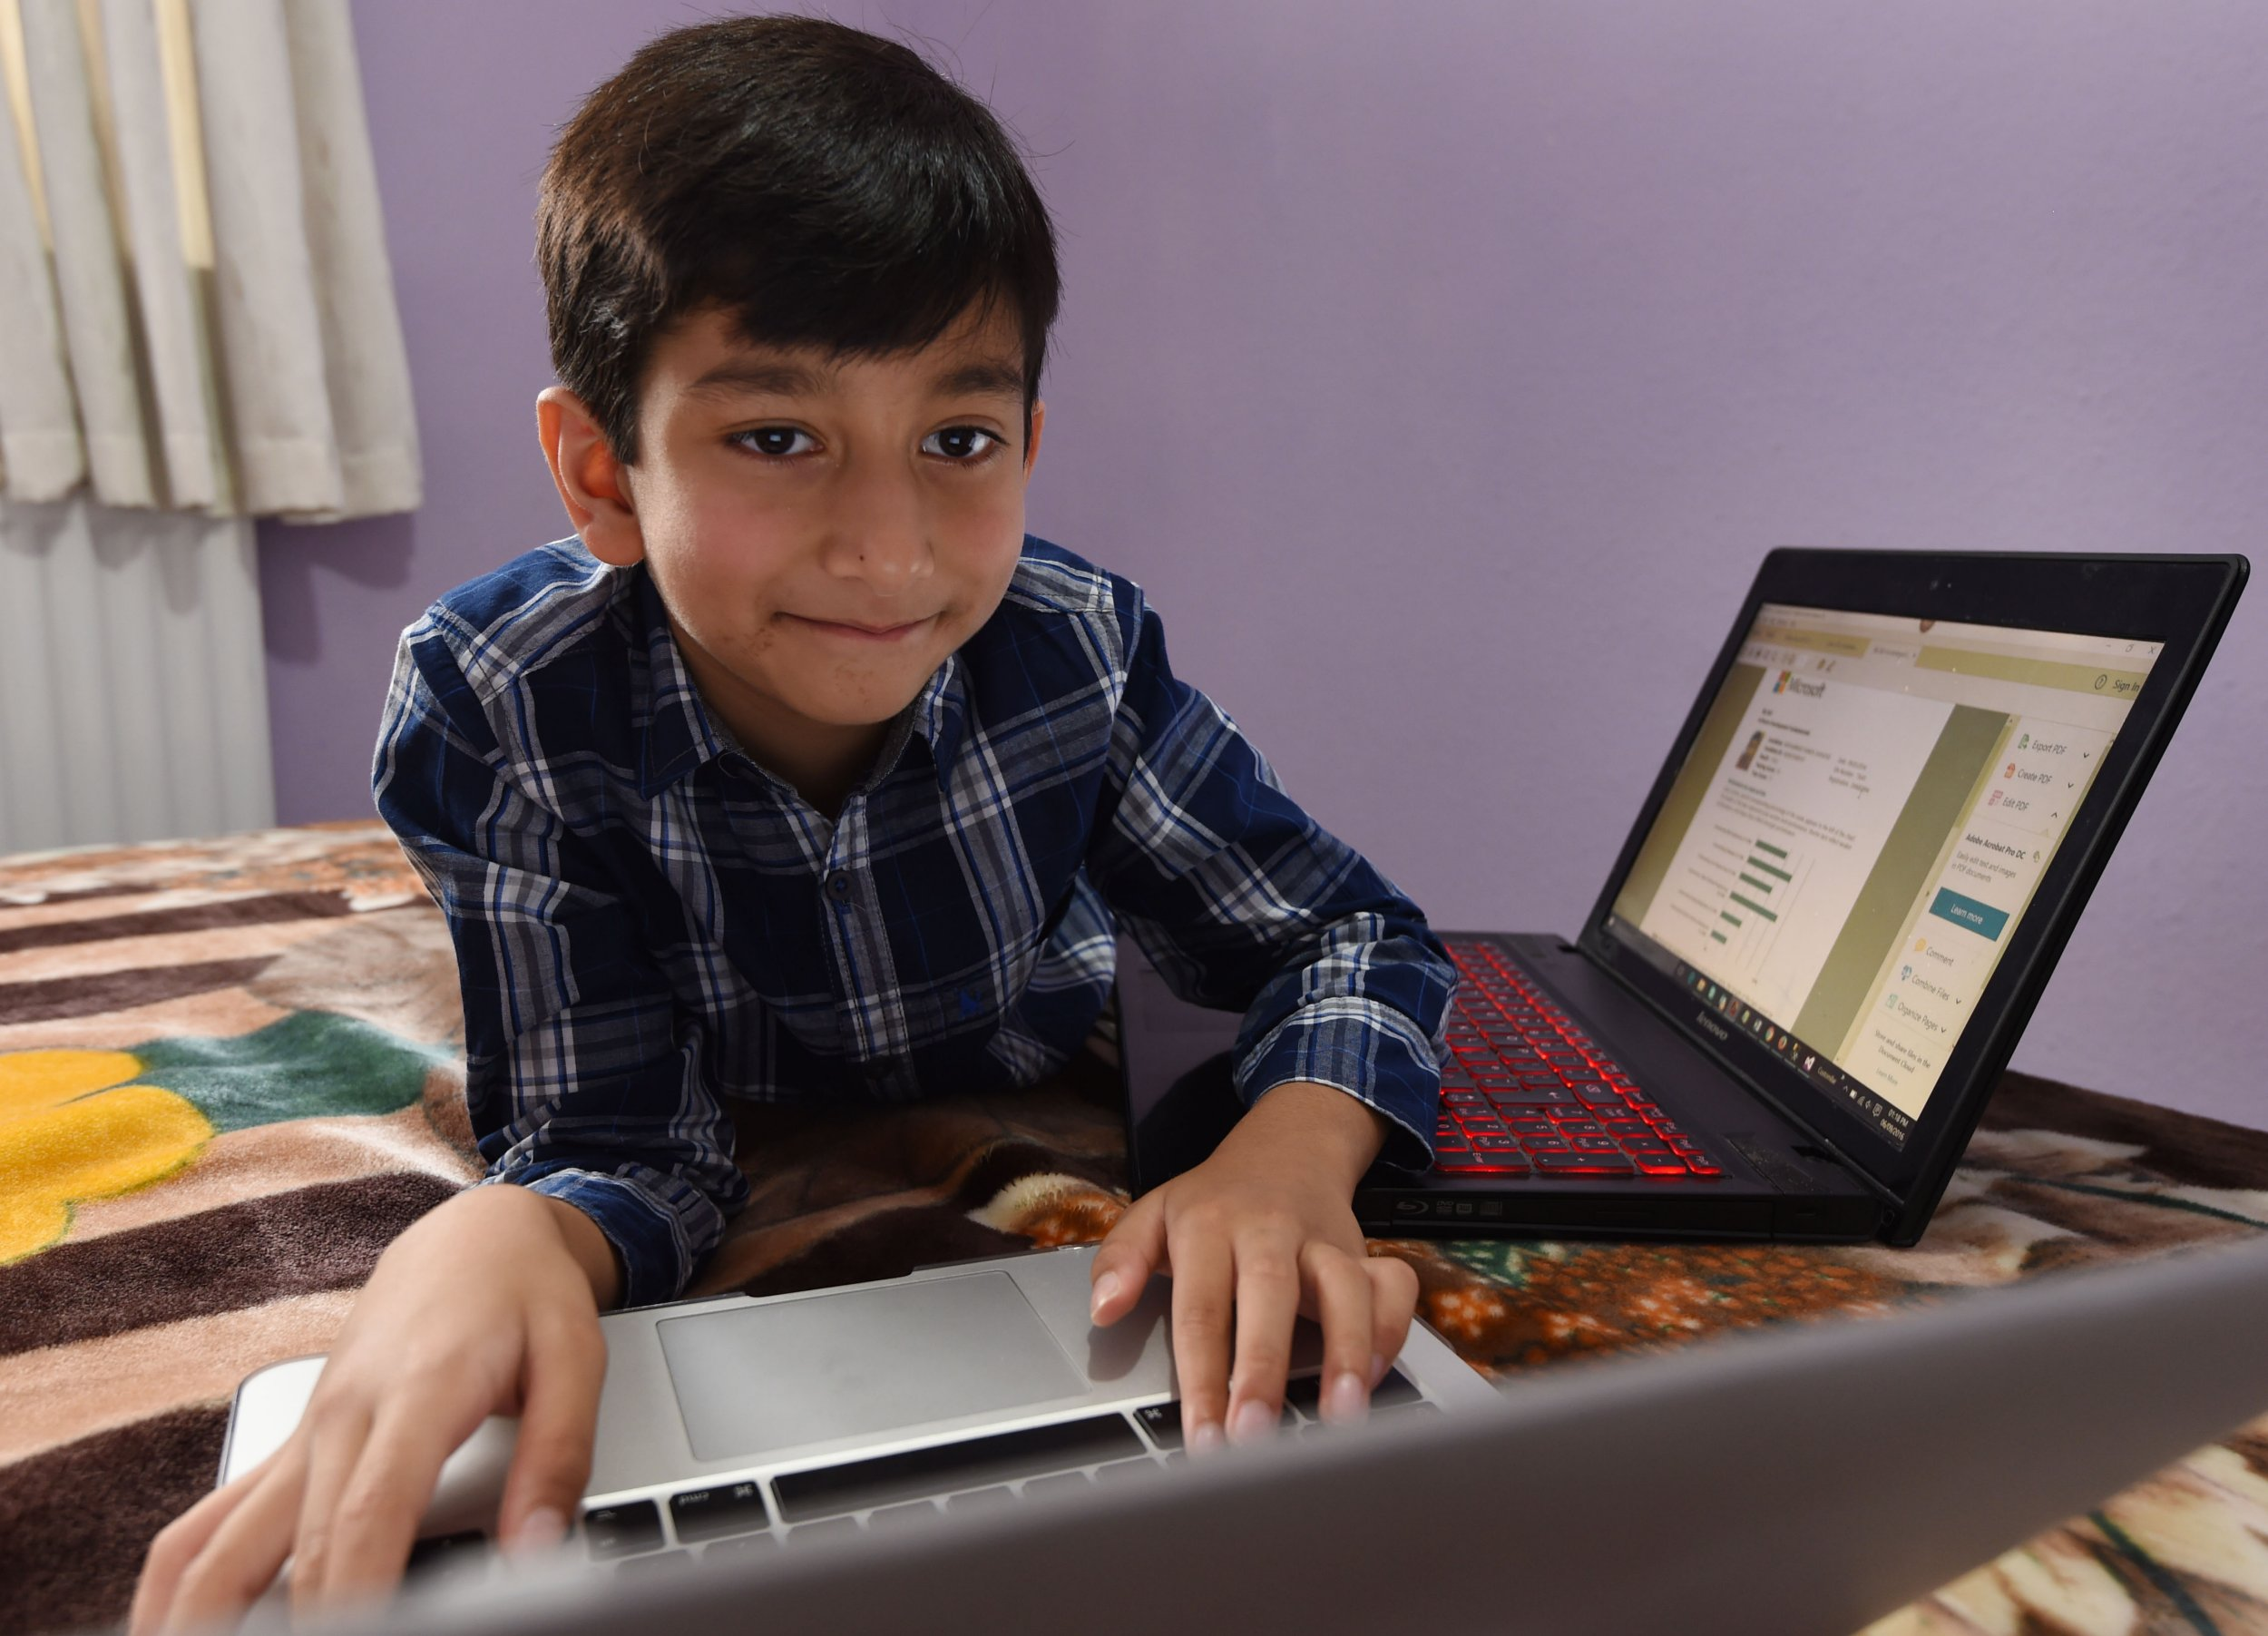 BPM MEDIA: 7 year old Muhammad Hamza Shahzad  from Handsworth Wood, Birmingham, who is the worlds youngest computer programmer and has been awarded qualifications and certificates from Microsoft for his achievements.